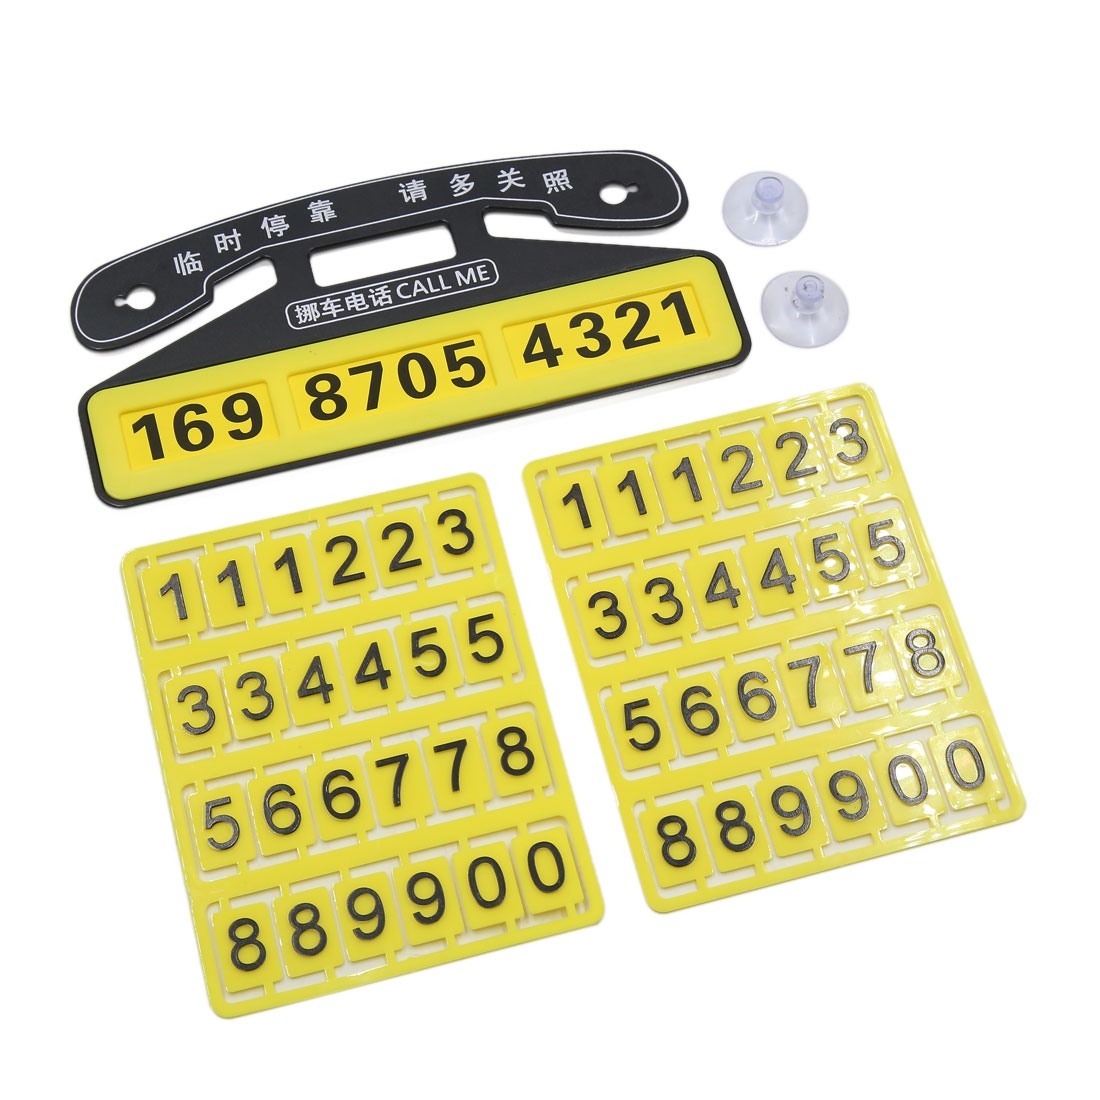 Yellow Plastic Puzzle Suction-Cup Parking Notification Phone Number Card for Car